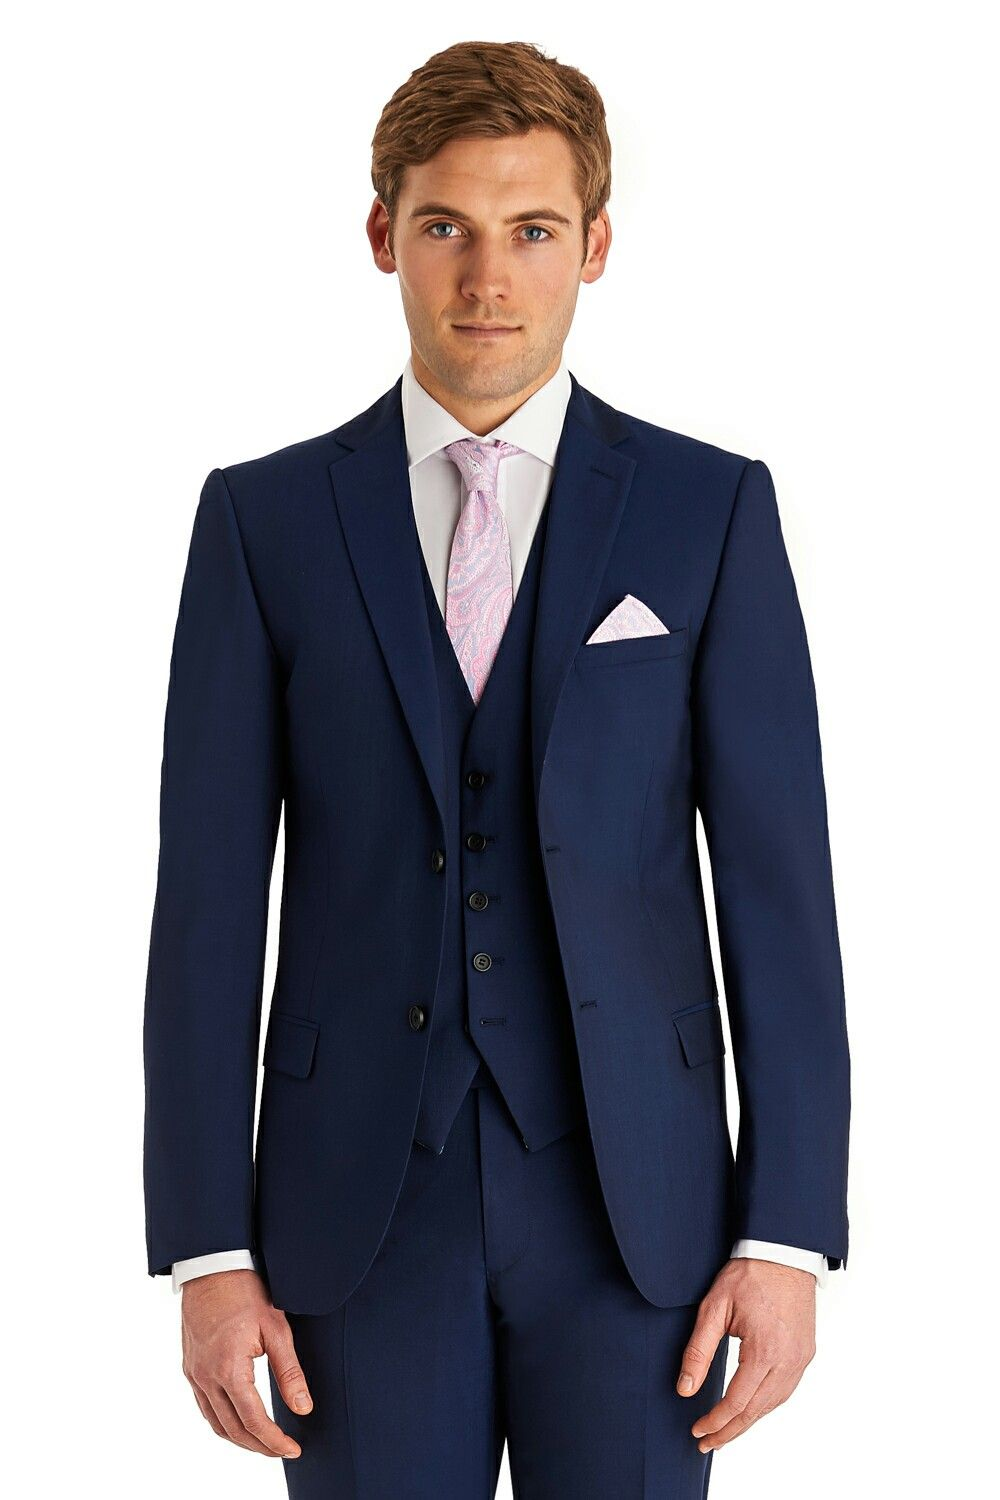 Ted Baker Lounge Lizard Hire Suit Exclusive To Moss Bros Pop In And See One Of Our Experts Mossderby